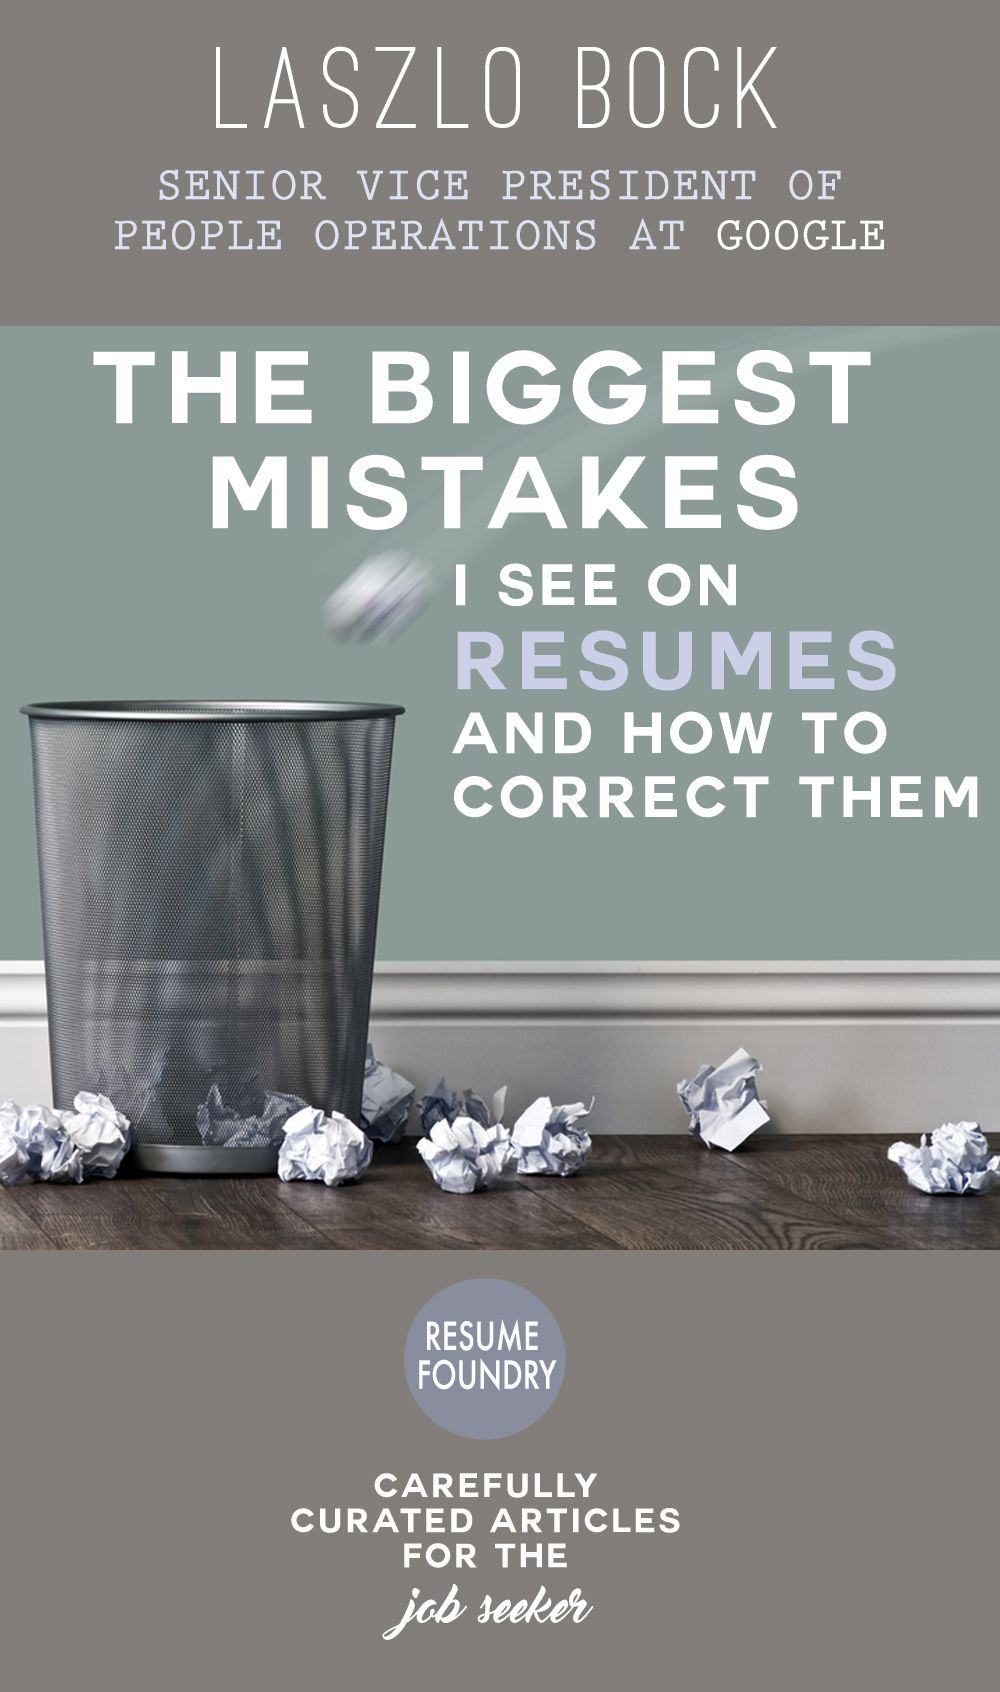 The Biggest Mistakes I See On Resumes, And How To Correct Them Sep 17,  See Resumes